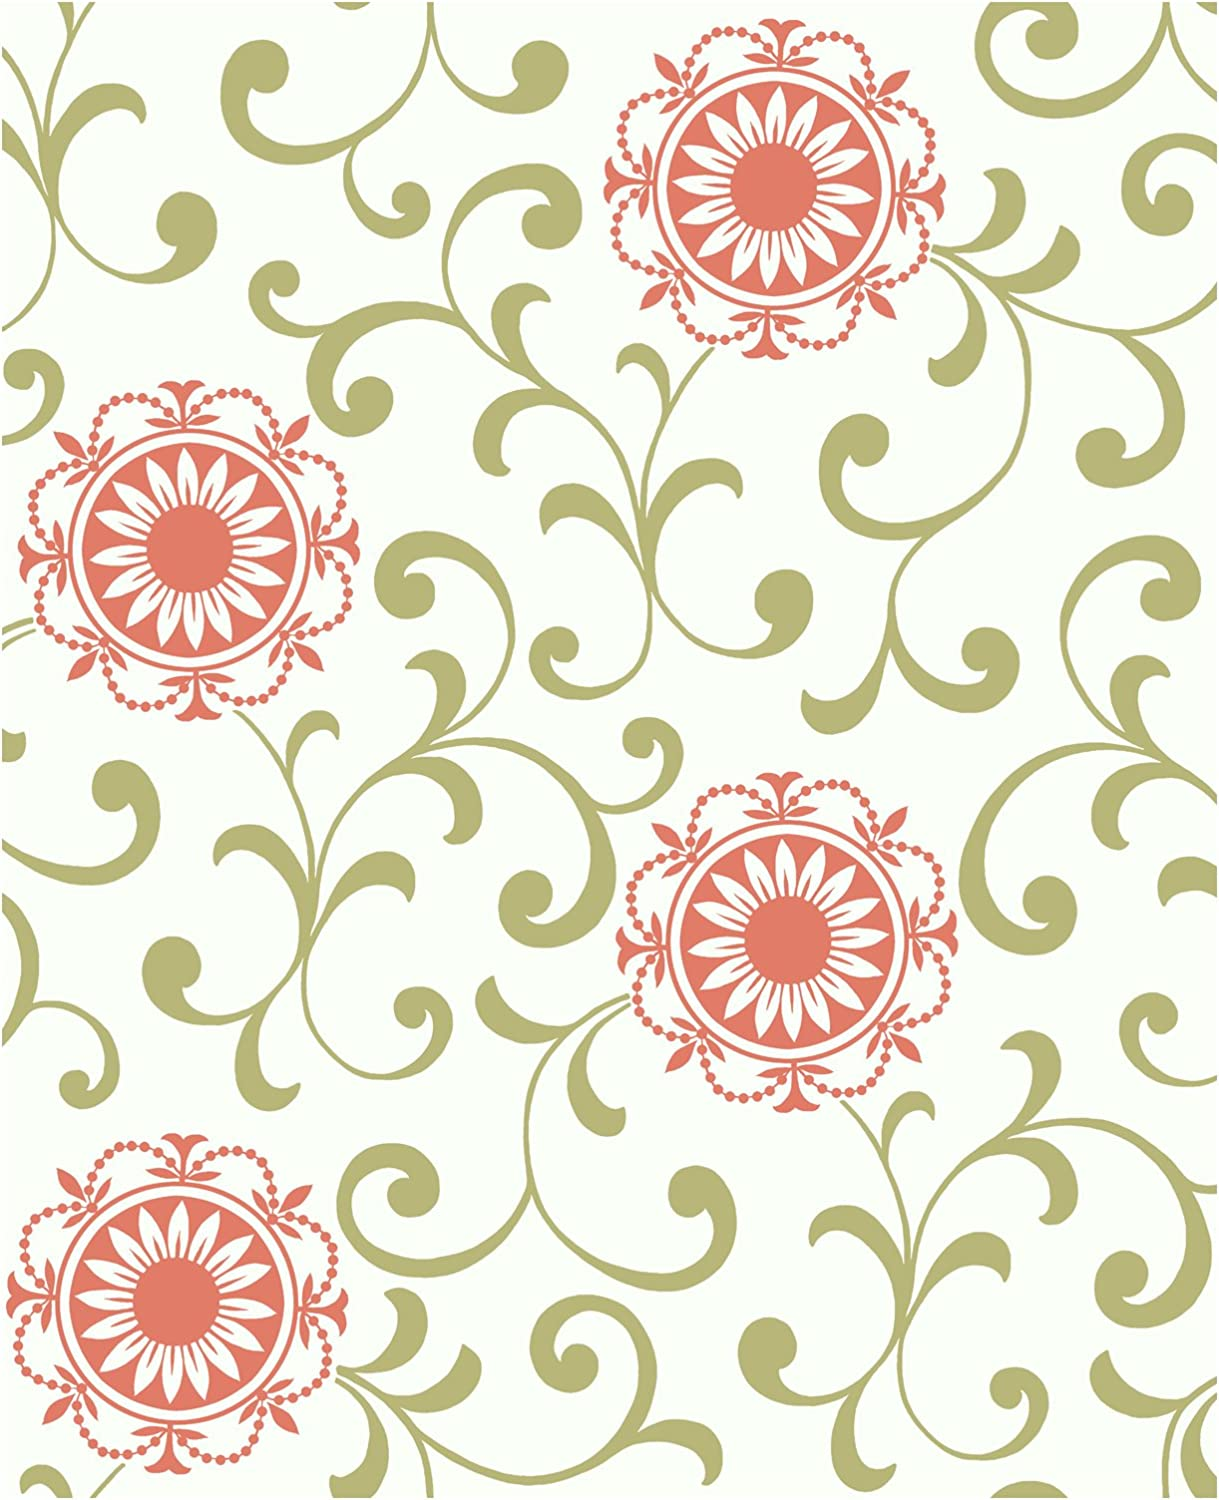 York Wallcoverings AP7456SMP Silhouettes Daisy Medallion with Scrolls Wallpaper Memo Sample 8-Inch x 10-Inch